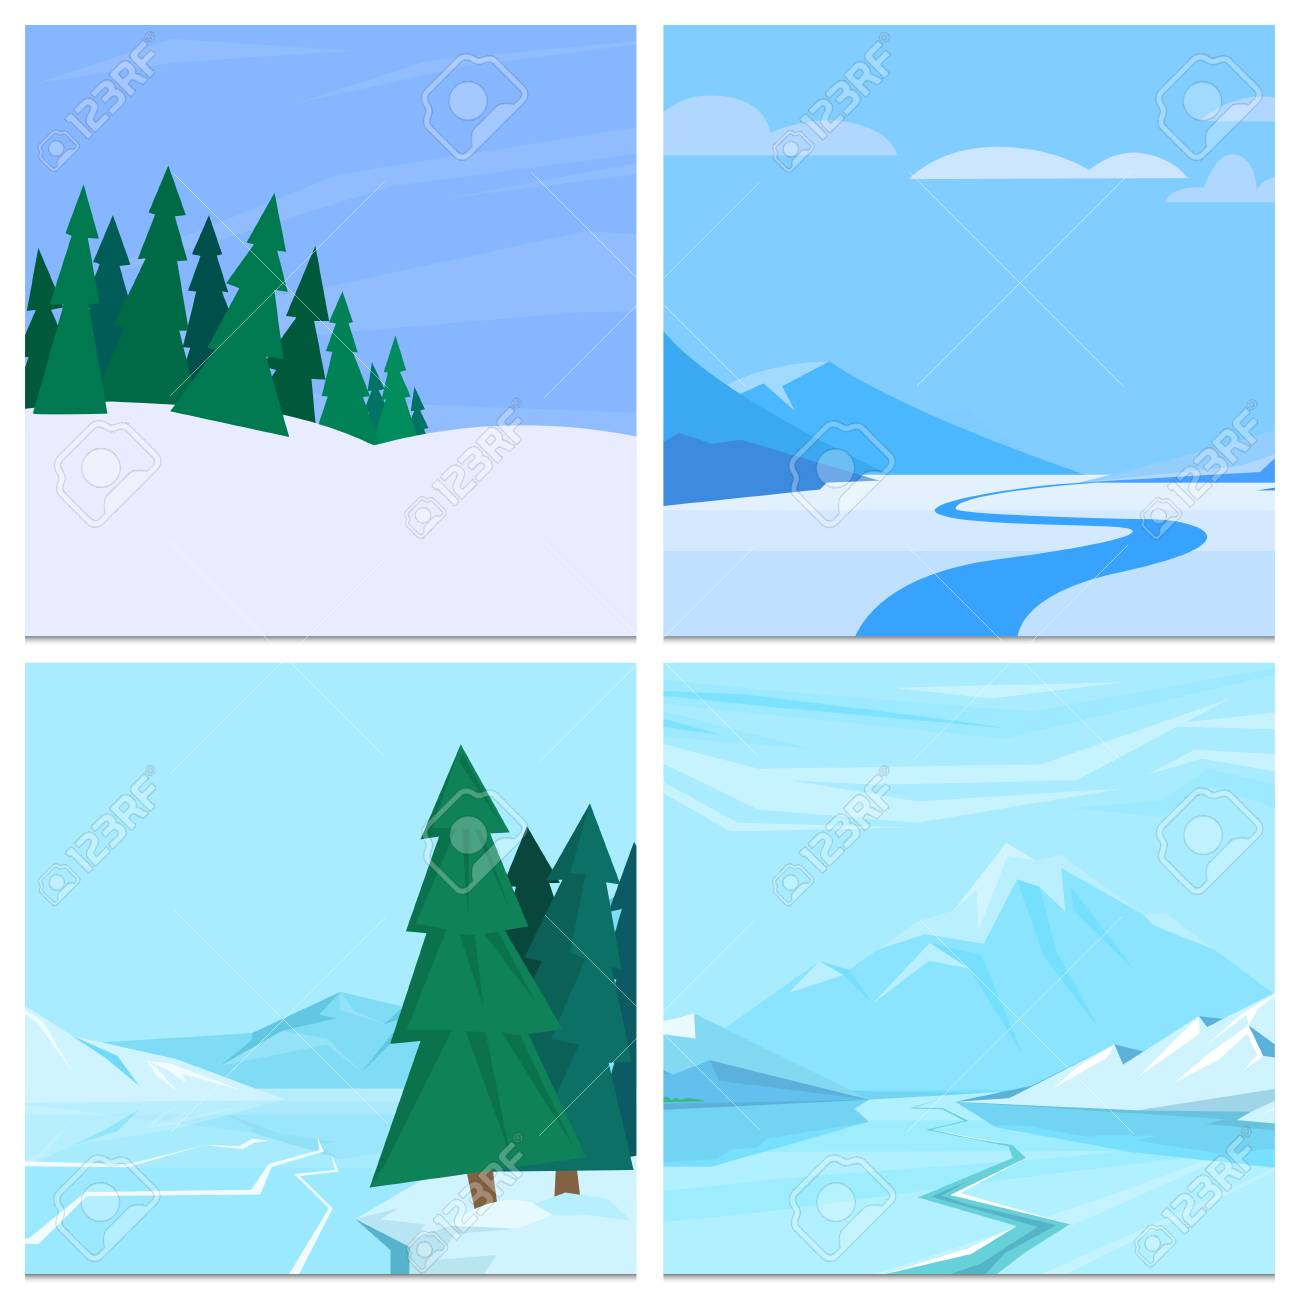 Winter Landscape With Christmas Tree Mountain Frozen Nature Wallpaper Stock Photo Picture And Royalty Free Image Image 90023014